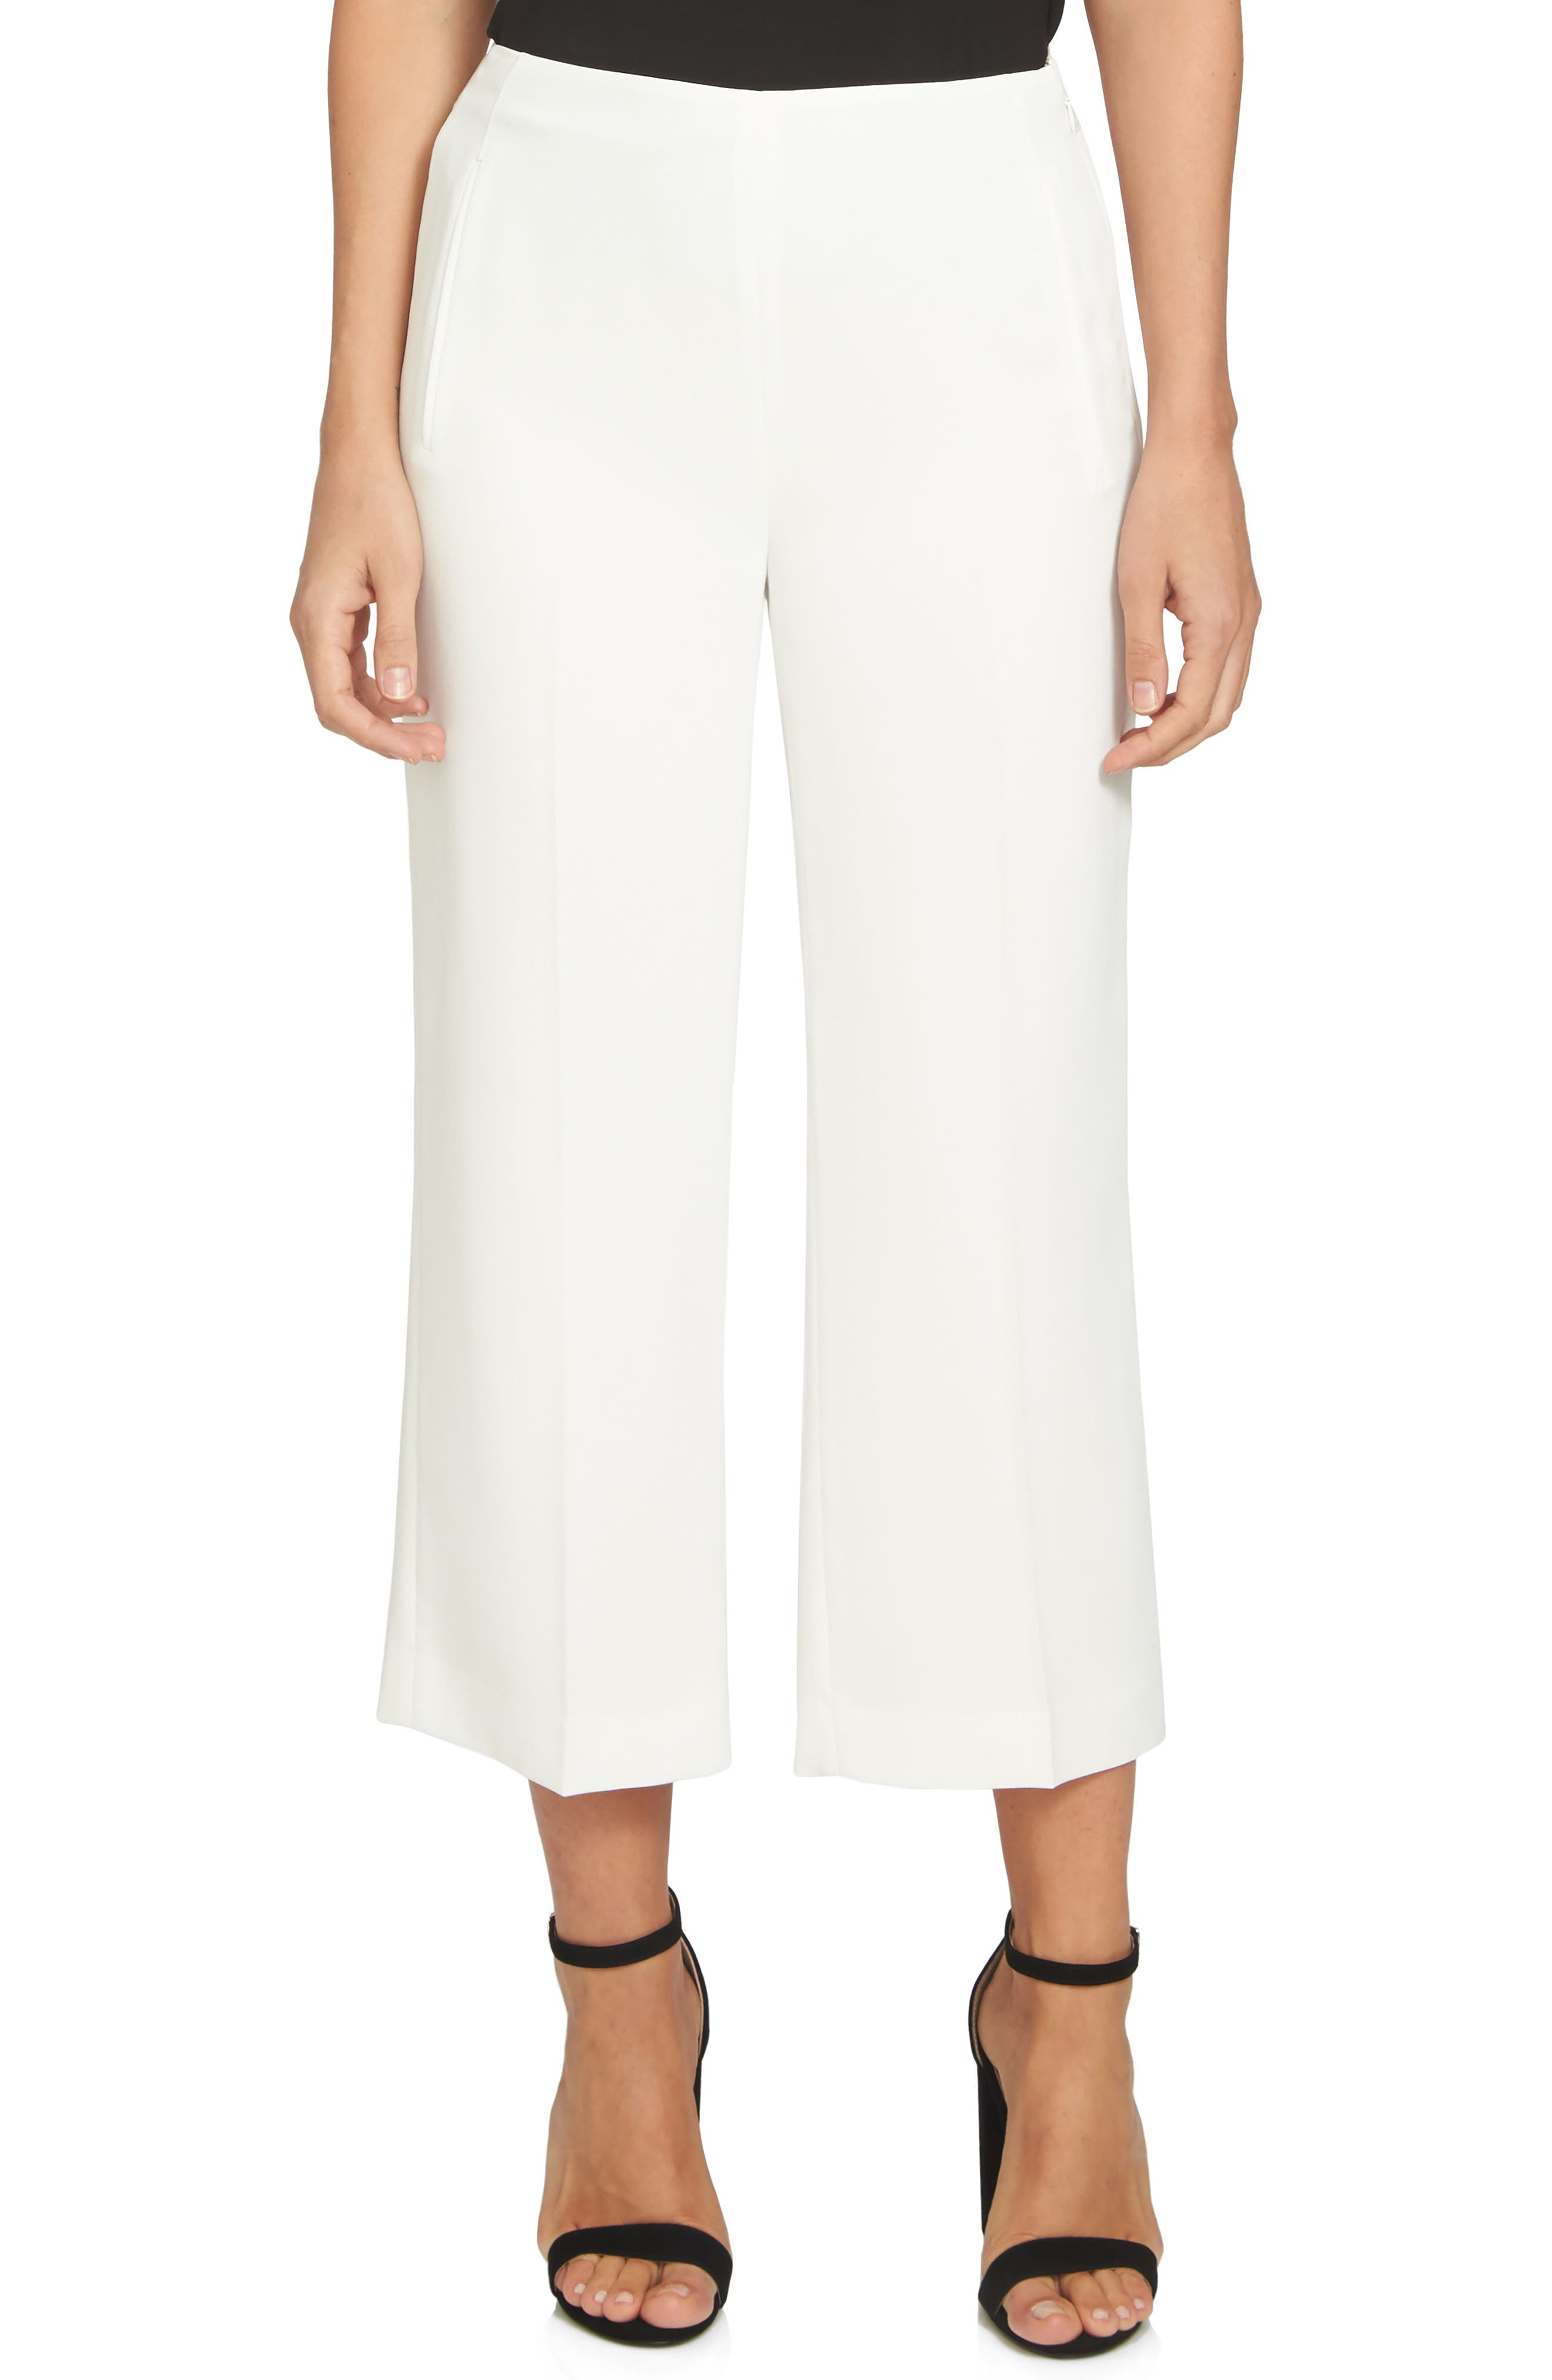 Moss Crepe Crop Trousers,                             Main thumbnail 1, color,                             New Ivory